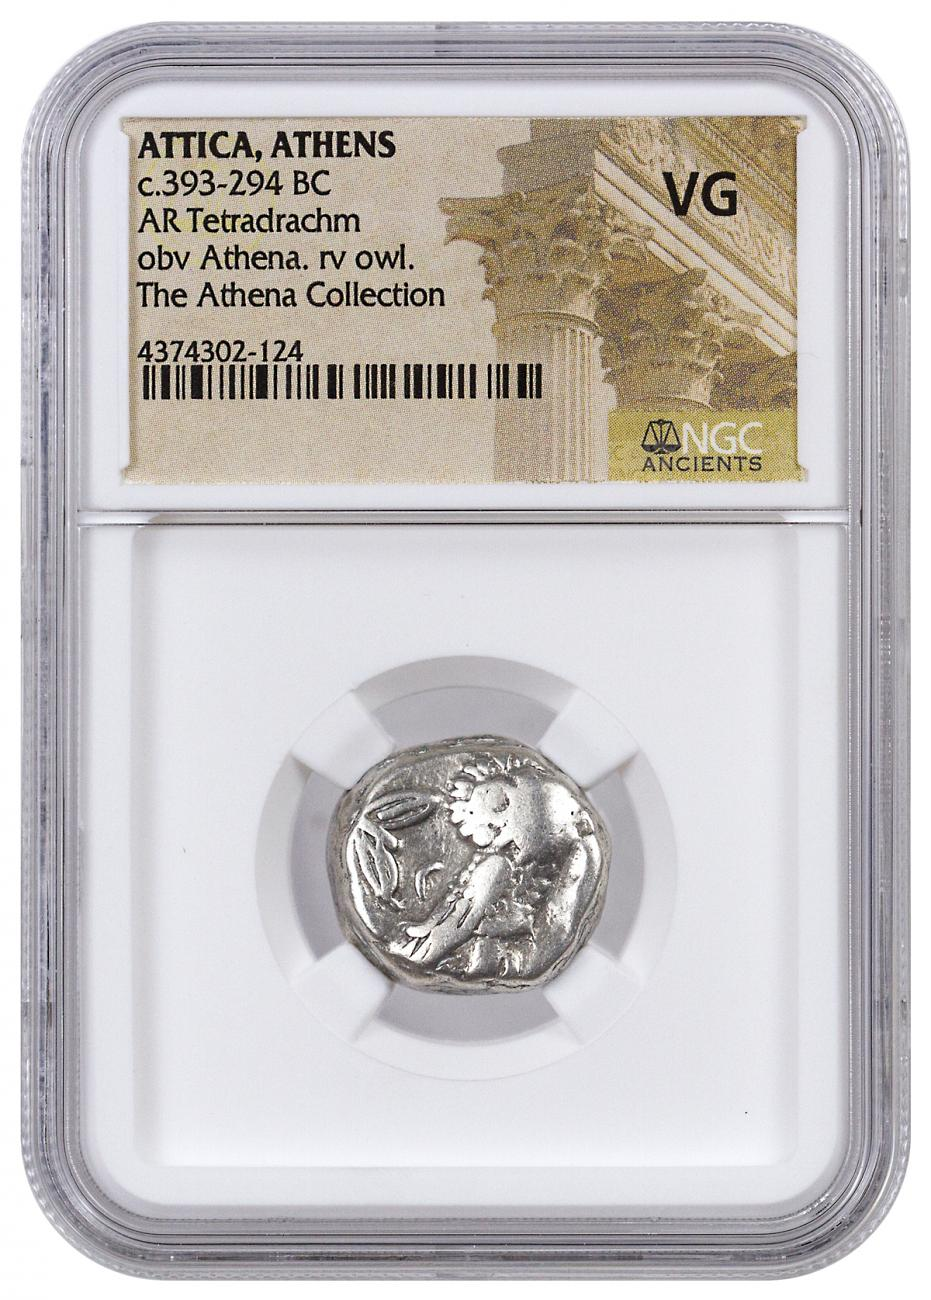 Greek City-State of Athens Silver Tetradrachm - Athena and Owl c. 393-294 BC - NGC VG (Athena Collection)